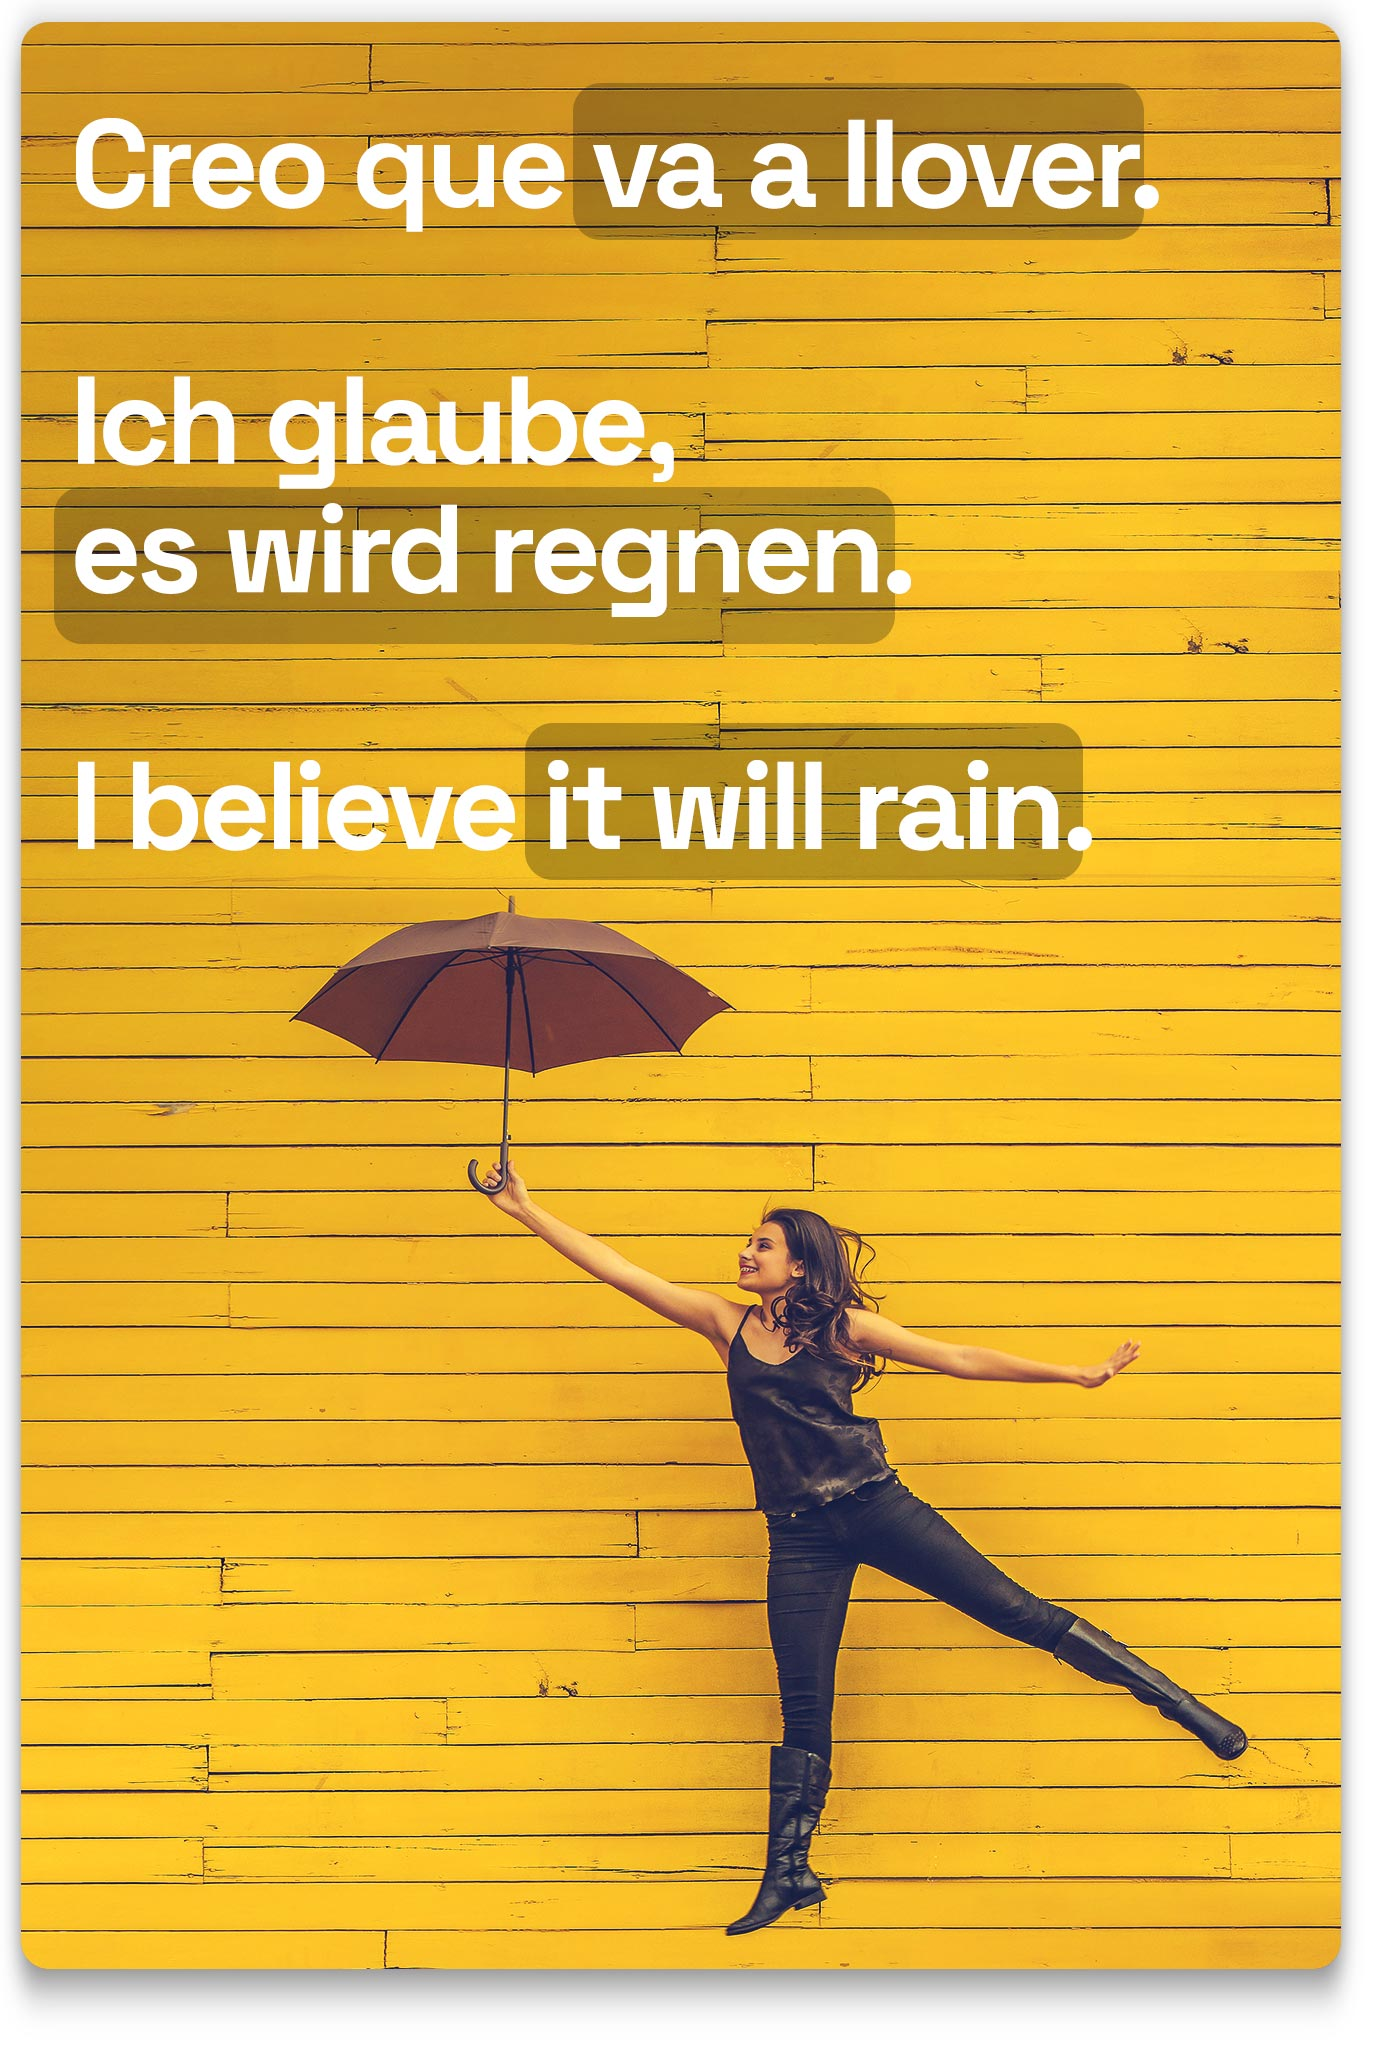 Woman with umbrella saying that she believes it would rain